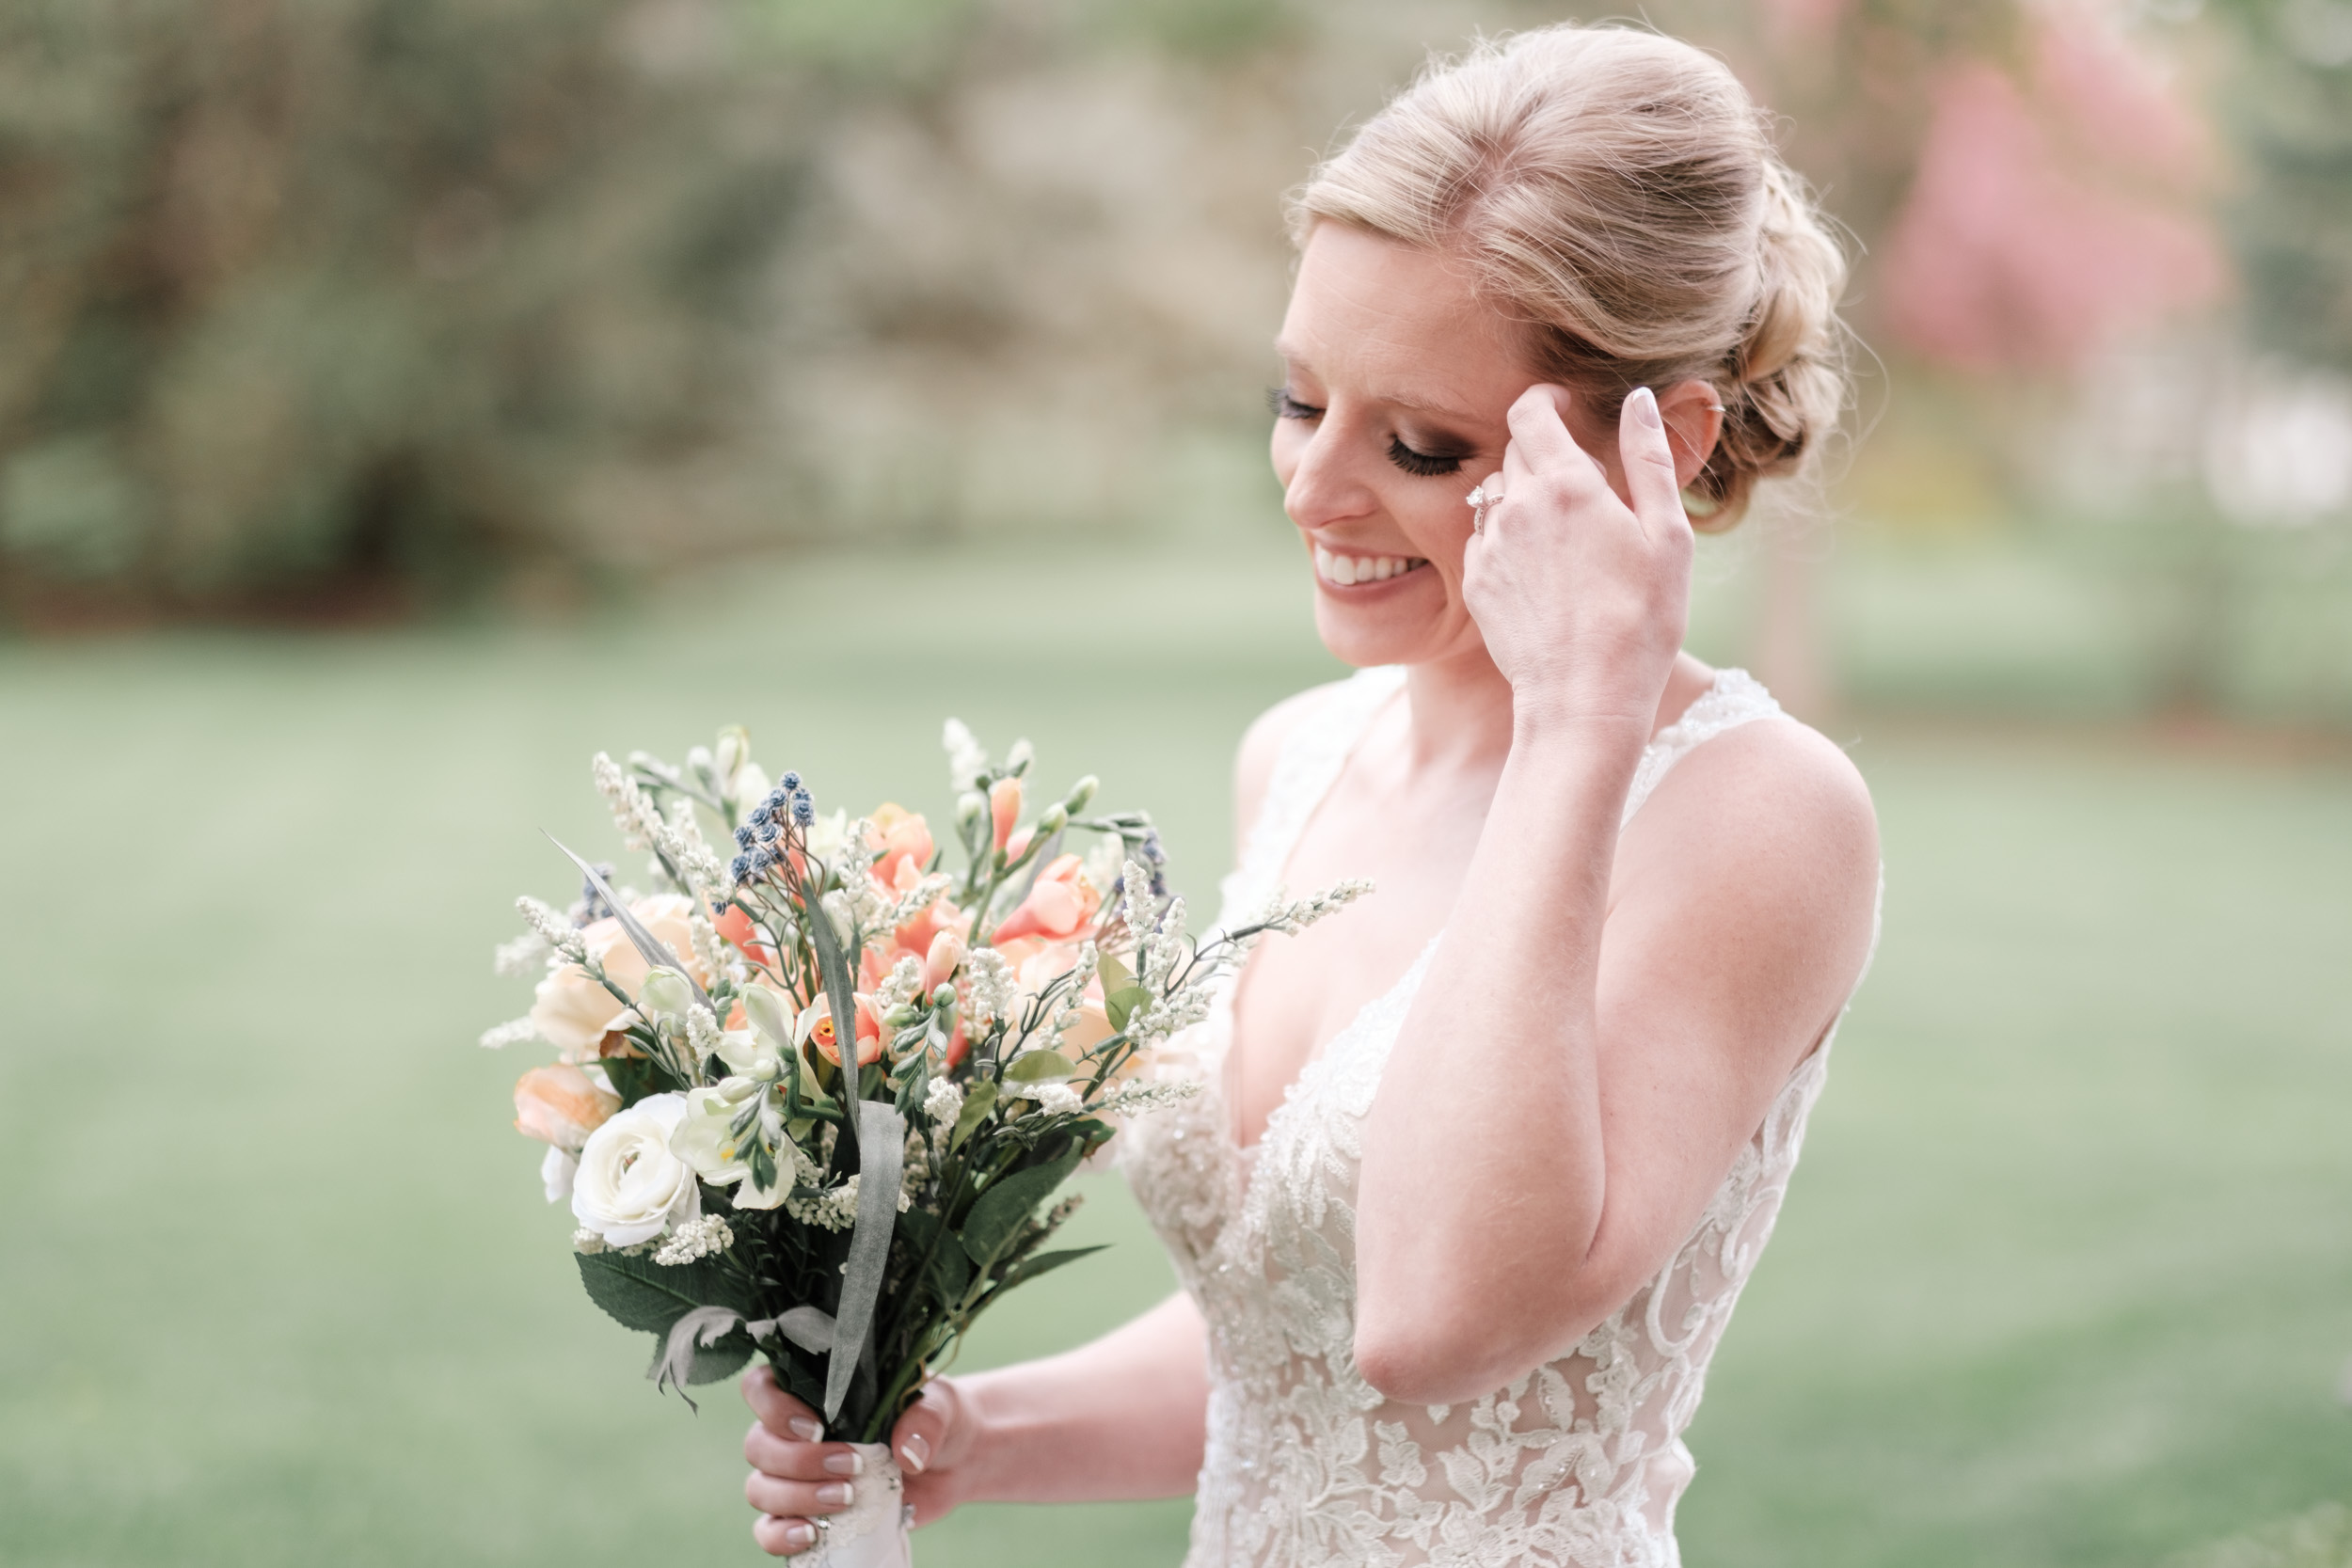 outdoor candid portrait of bride laughing and looking at wedding day flowers